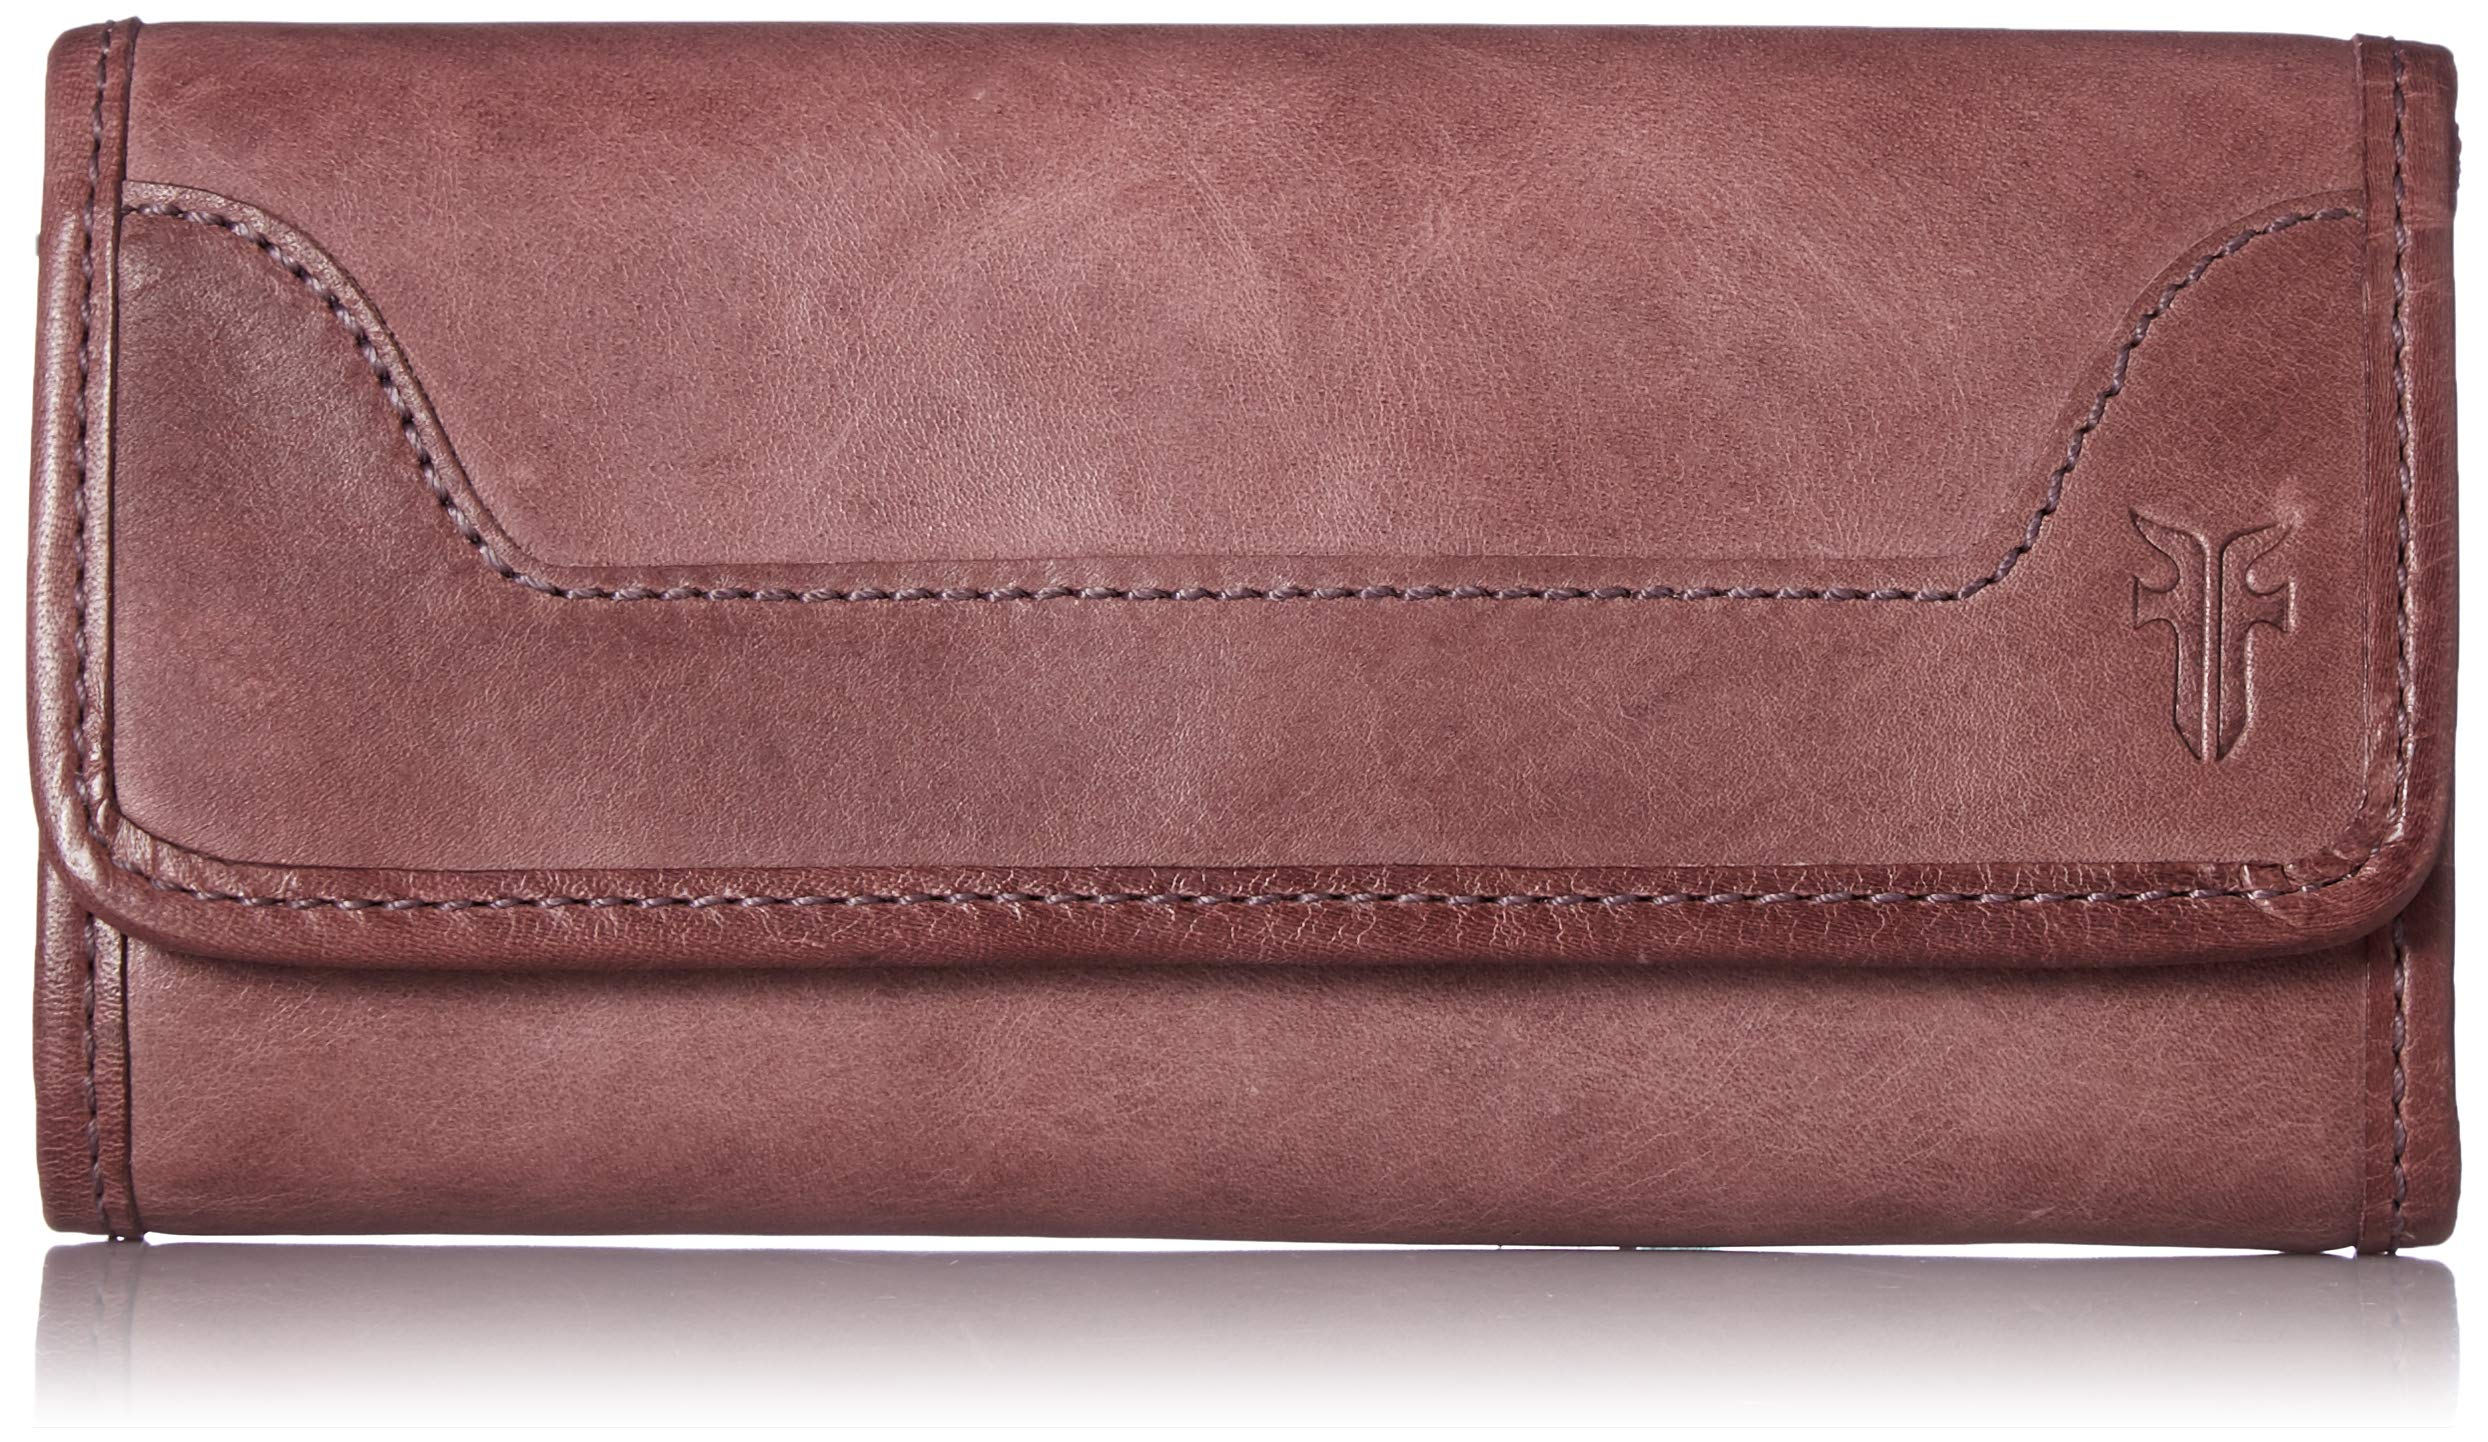 FRYE Melissa Continental Snap Leather Wallet, lilac